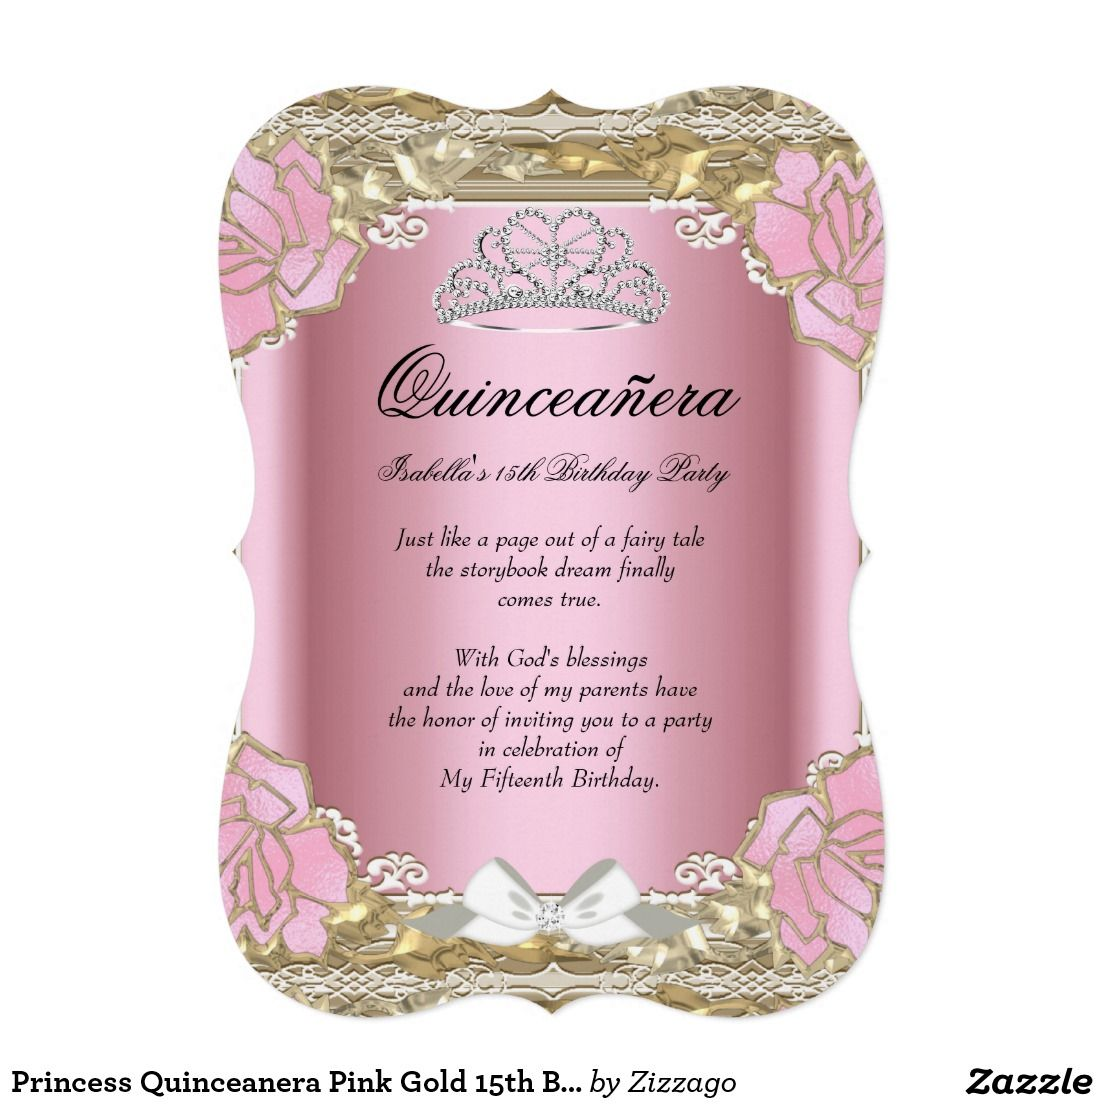 Princess Quinceanera Pink Gold 15th Birthday Tiara Card | Birthday ...